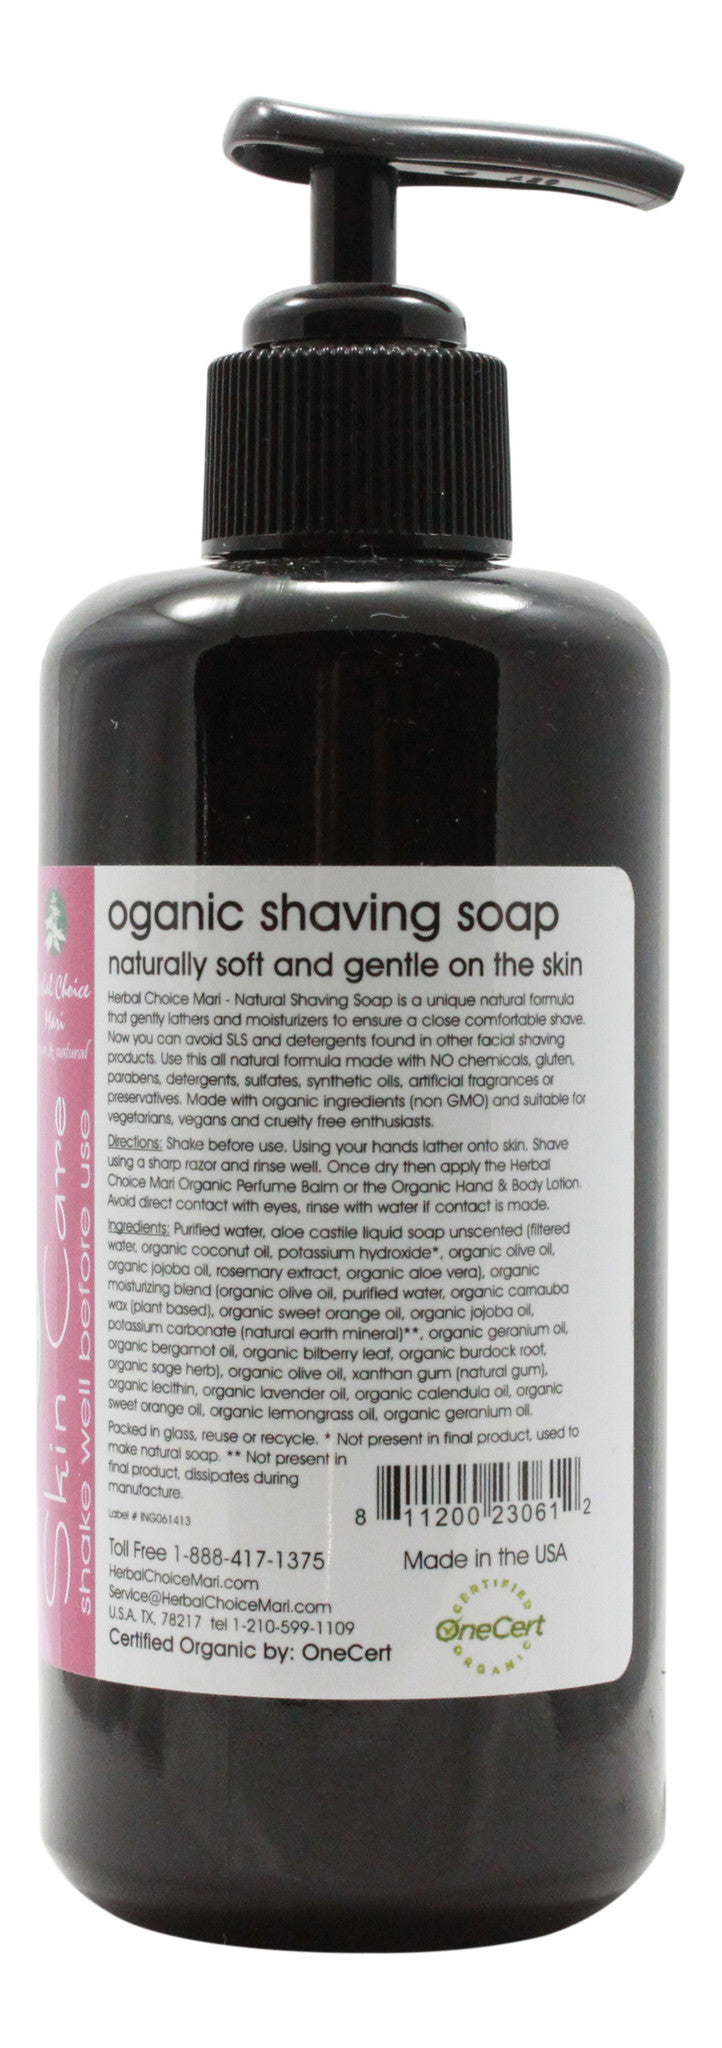 Natural Shaving Soap for Her - 6.8 oz Bottle - Info